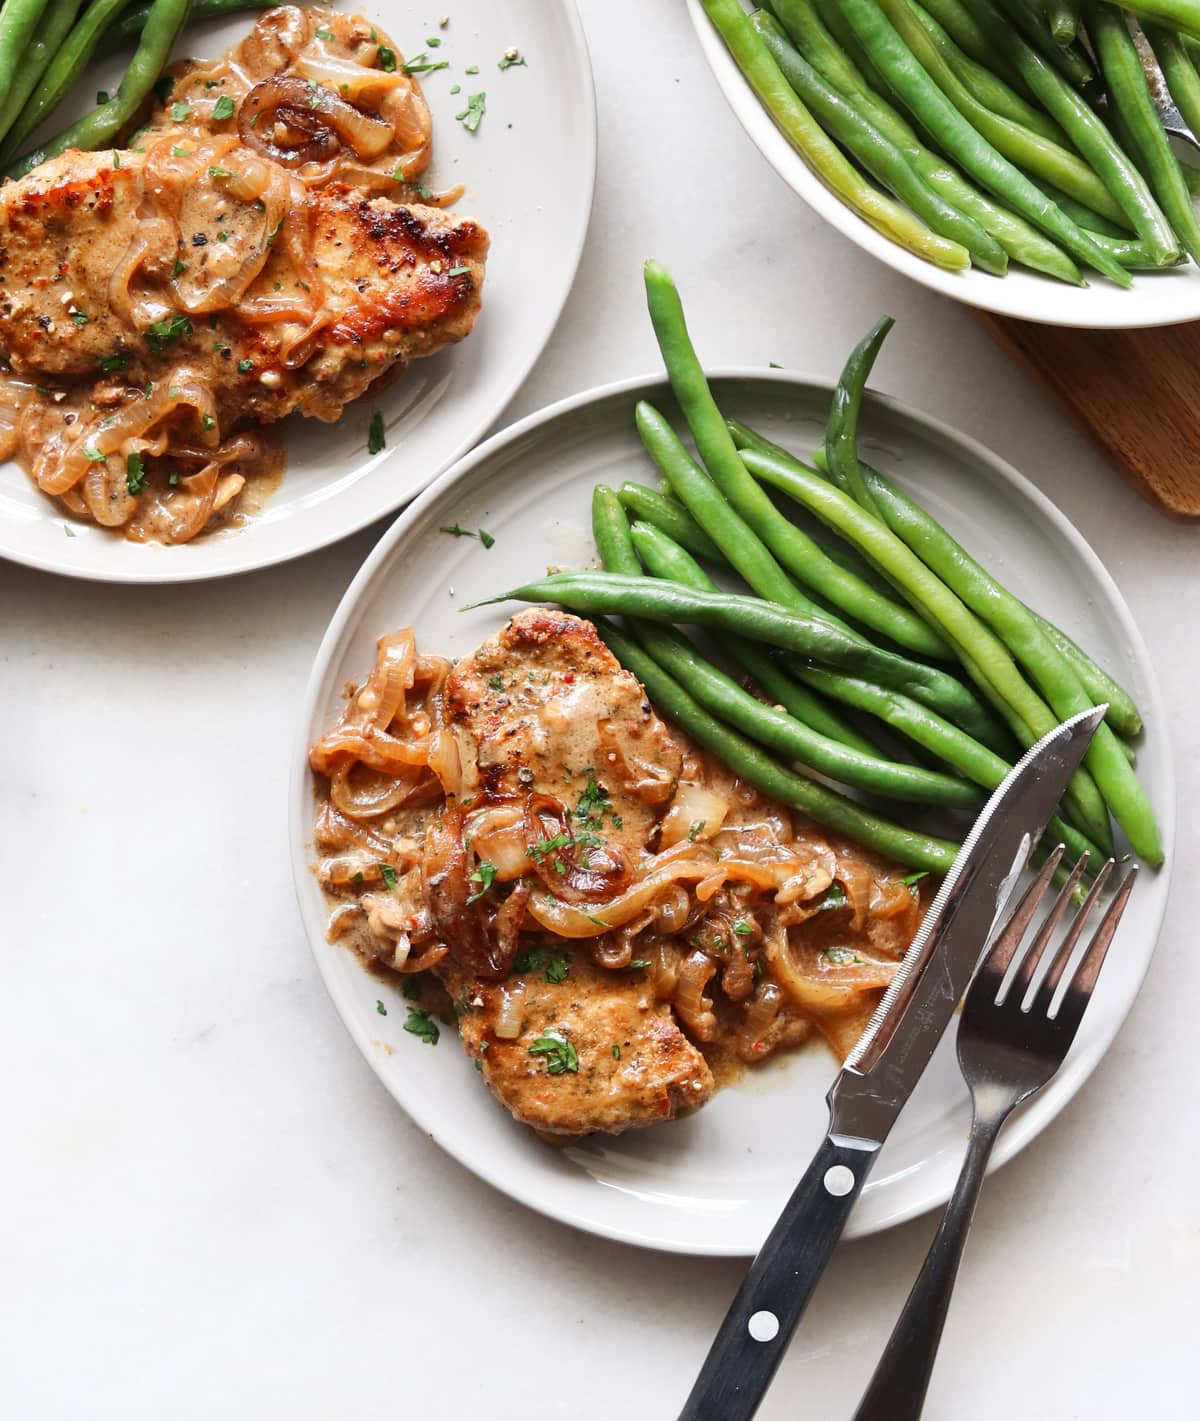 Cook pork chop on a gray plate, serve with green beans.